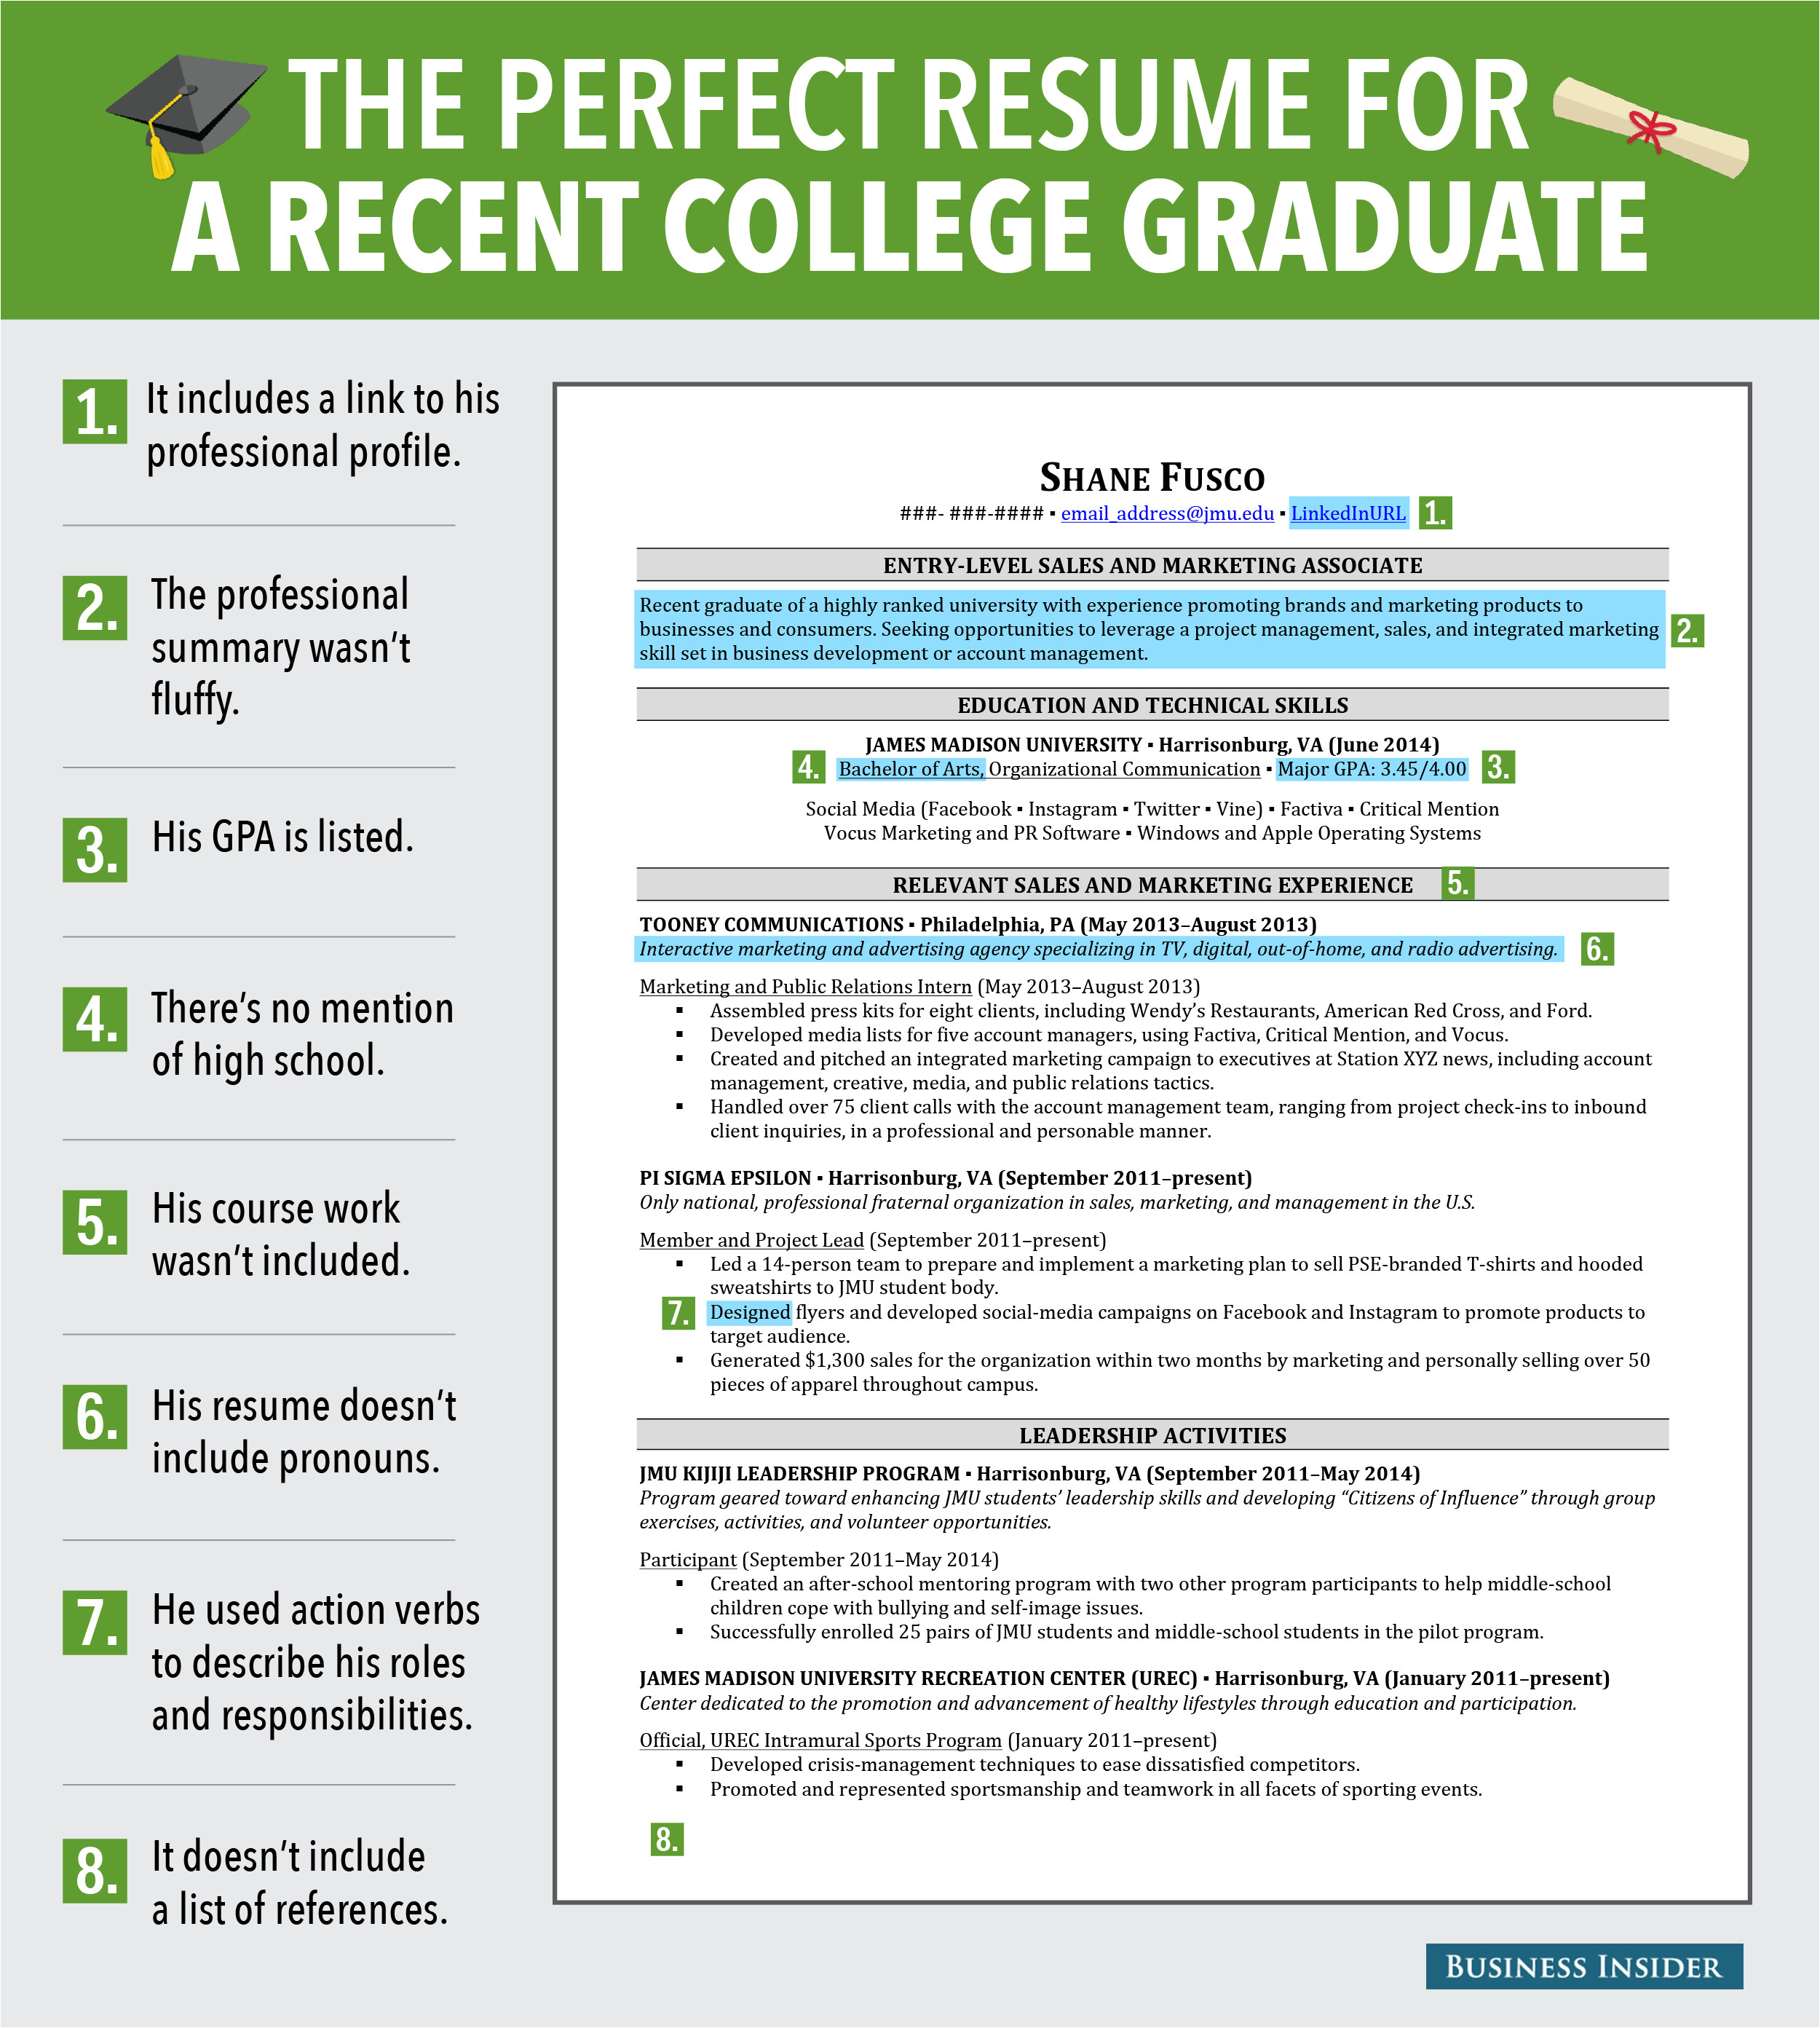 excellent resume for recent grad 2014 7